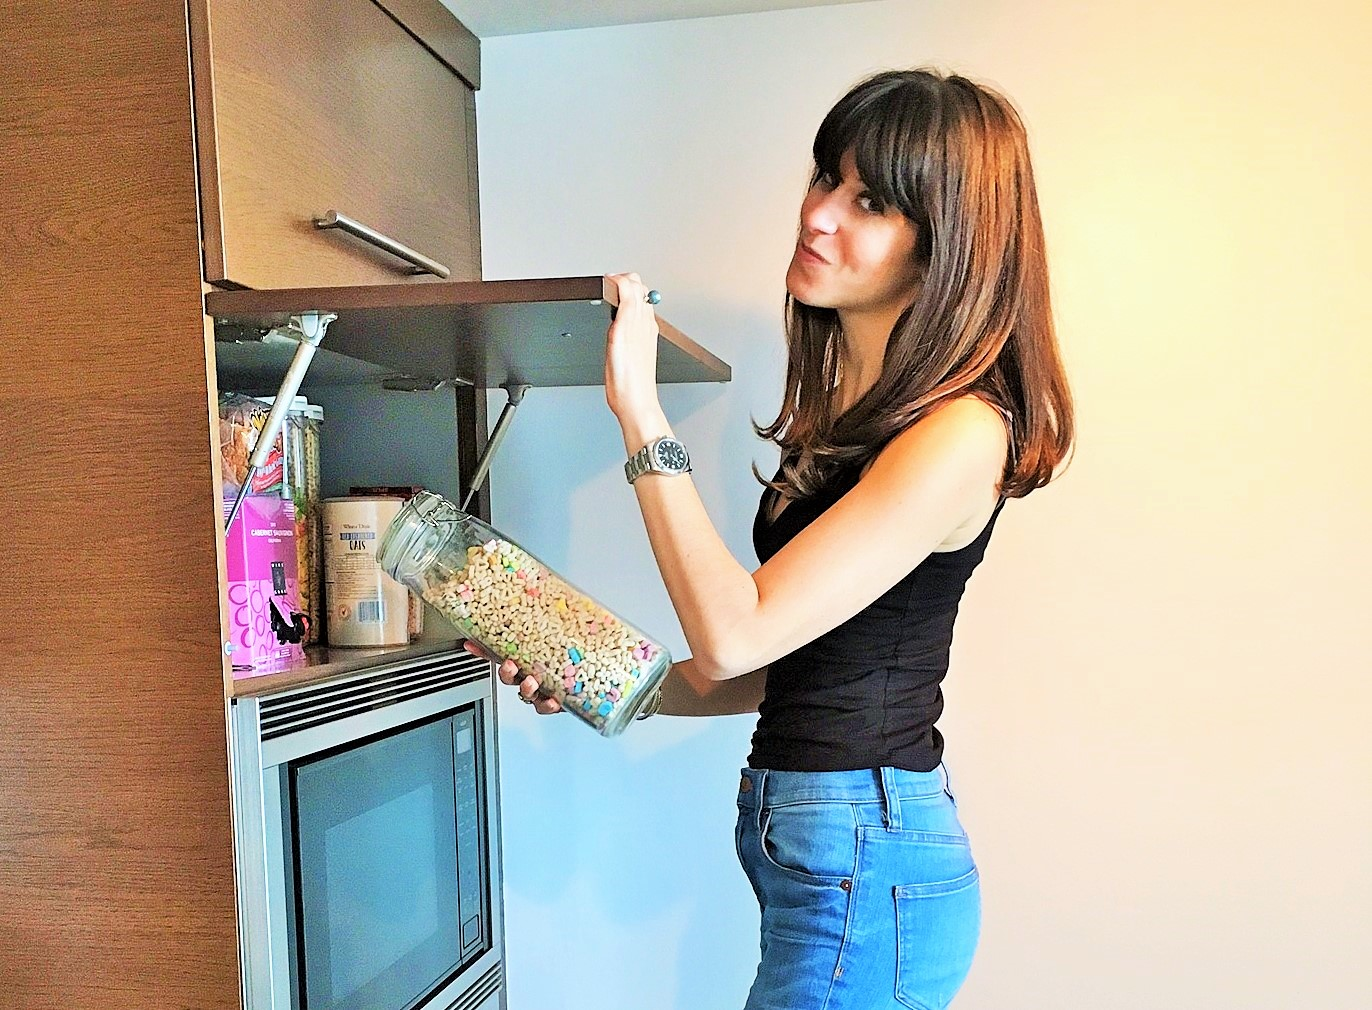 A Cupboard Cleaning to Kick-Start your New Year